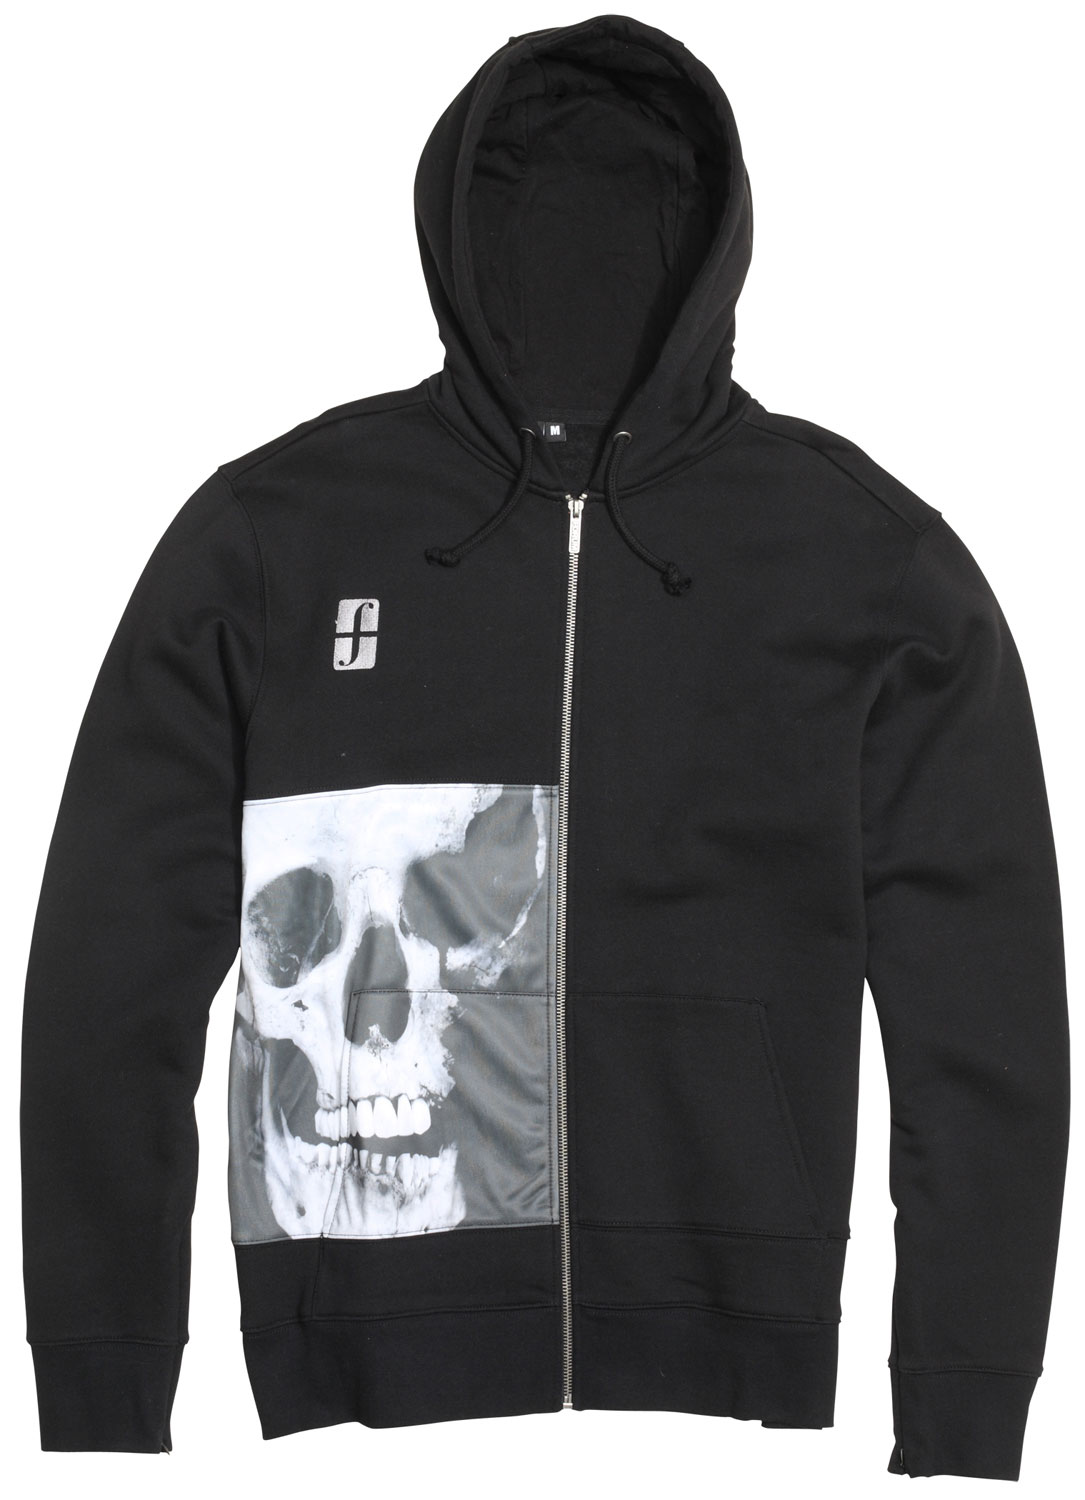 Key Features of the Forum Destroyer Full Zip Hoodie: Full-zip hoodie Regular fit 80% cotton 20% polyester brushed fleece, 300g 100% polyester front-right panel 100% cotton jersey hood lining Hidden media pocket - $32.95